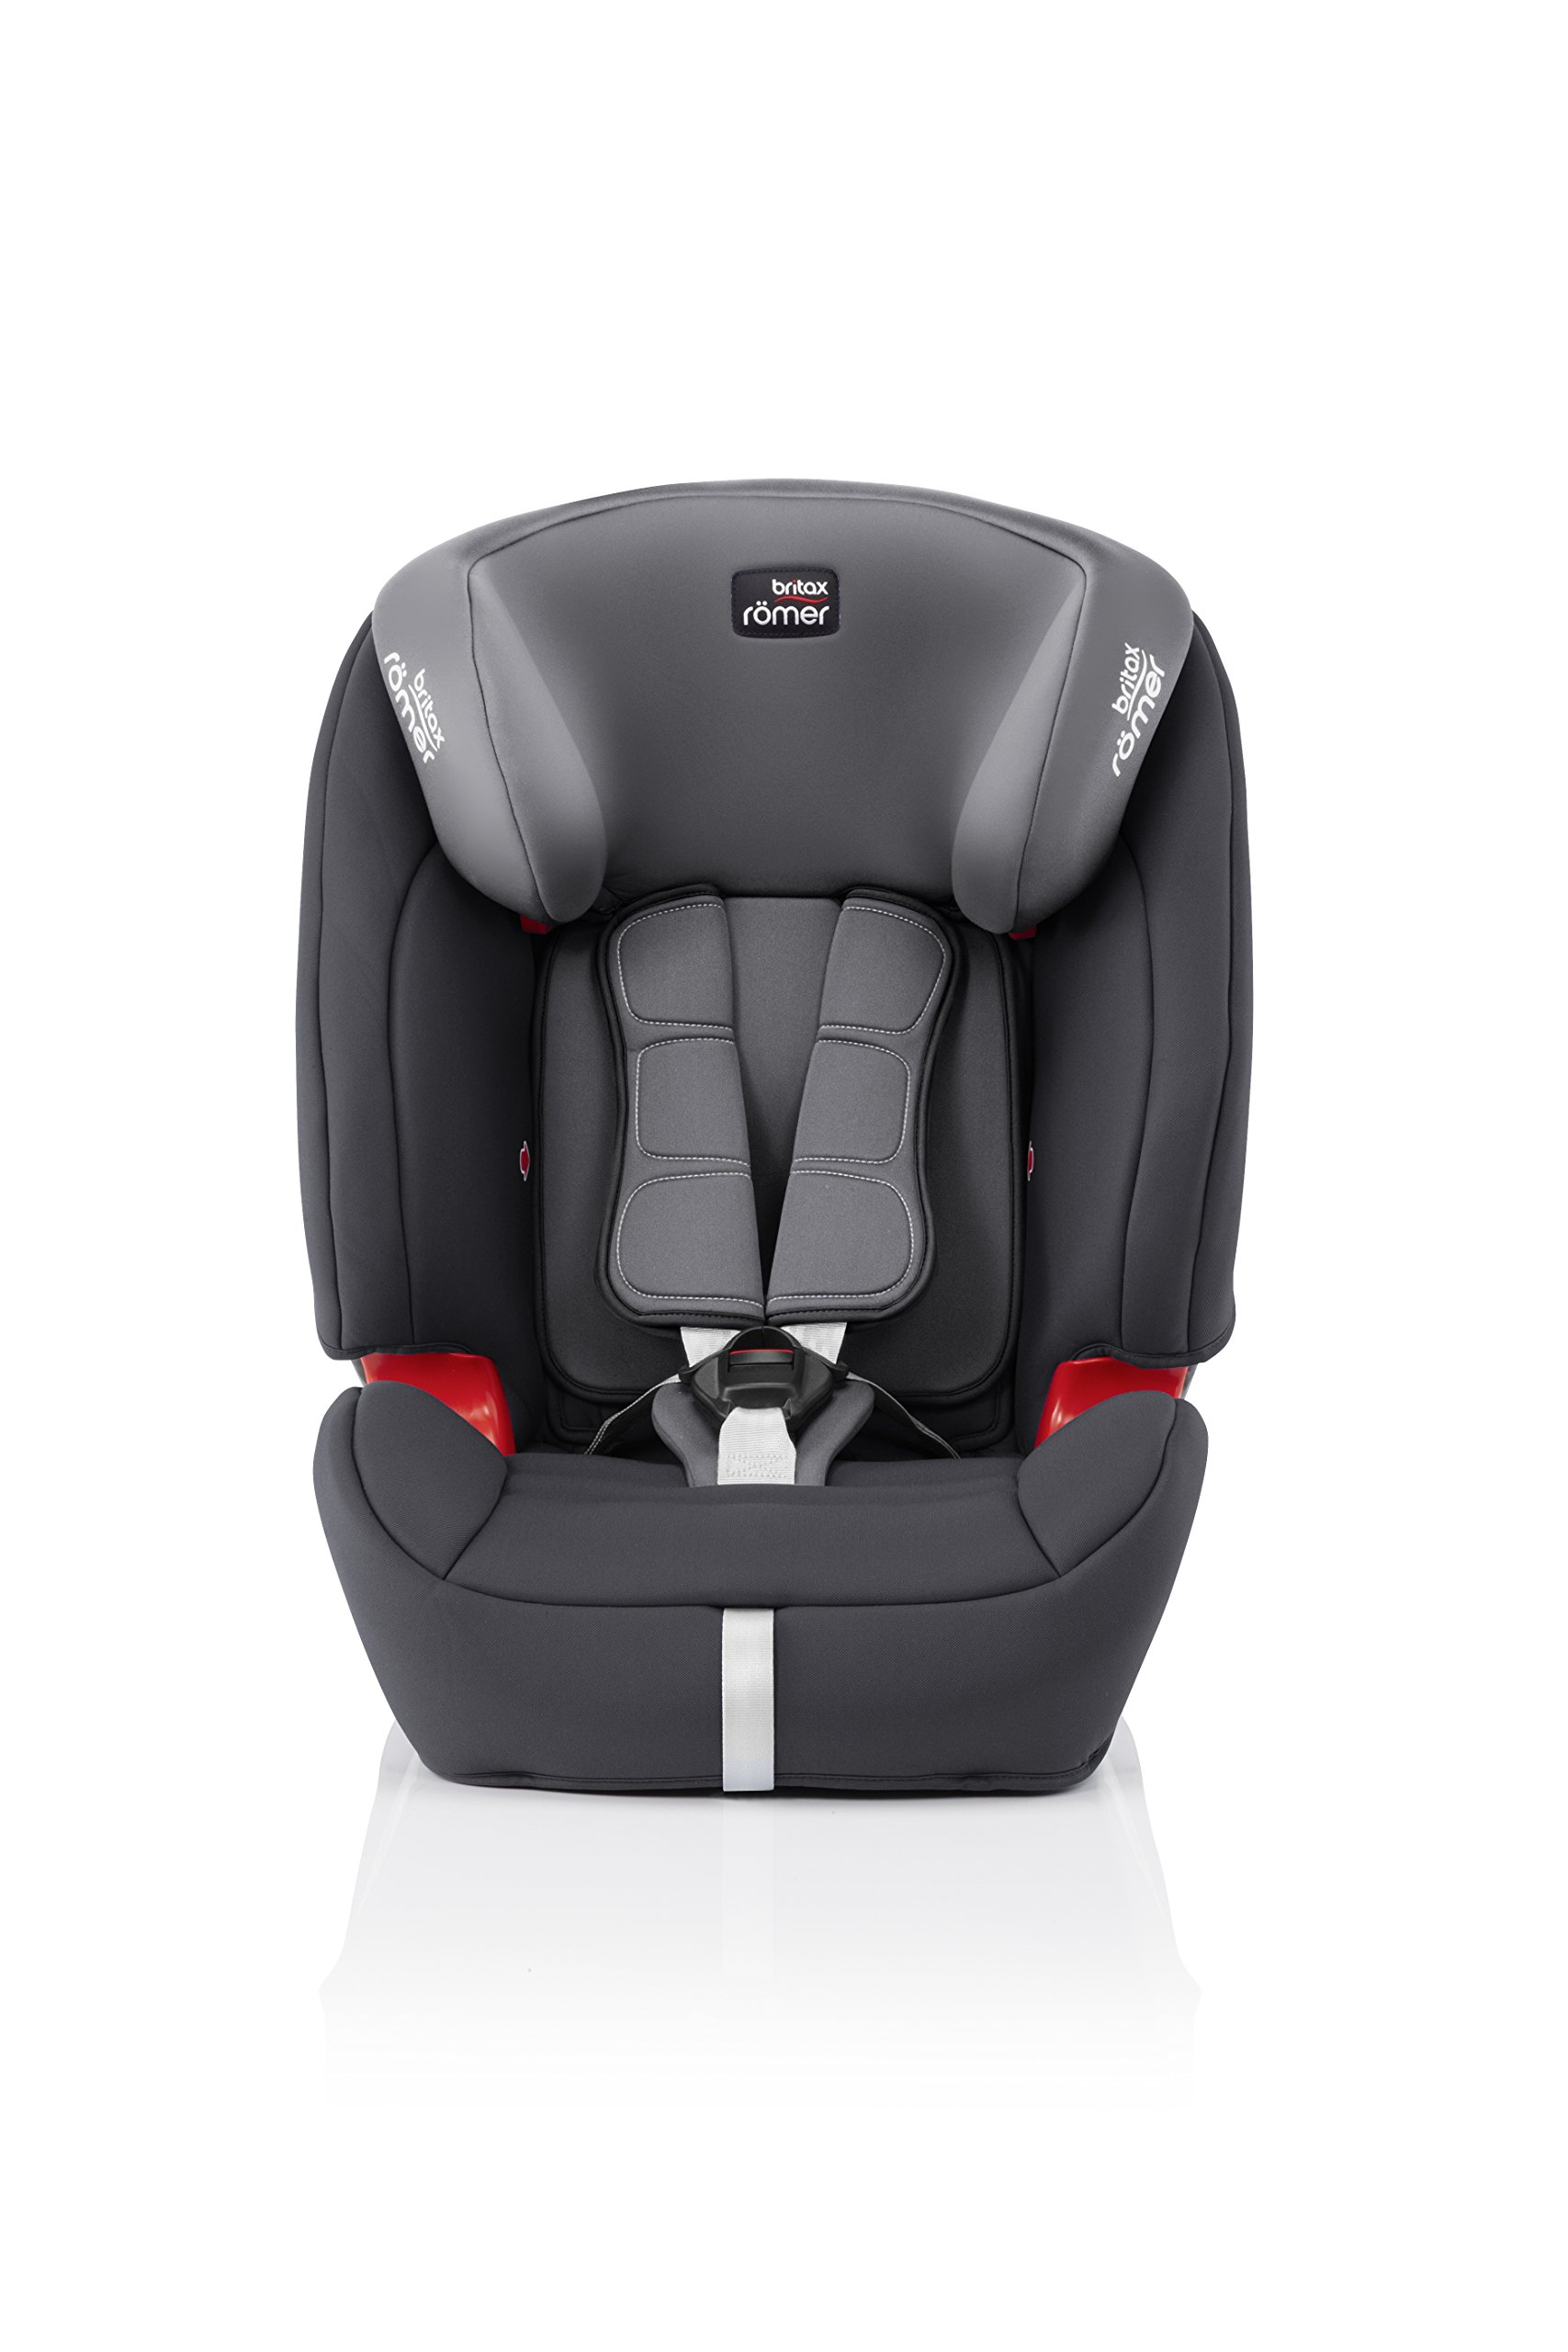 Britax Römer EVOLVA 1-2-3 SL SICT Group 1-2-3 (9-36kg) Car Seat - Storm Grey  Installation, ISOFIX and a 3-point seat belt, or 3-point seat belt only Advanced Side Impact Protection (SICT) minimises the force of an impact in a side collision CLICK & SAFE audible harness system for that extra reassurance when securing your child in the seat 2